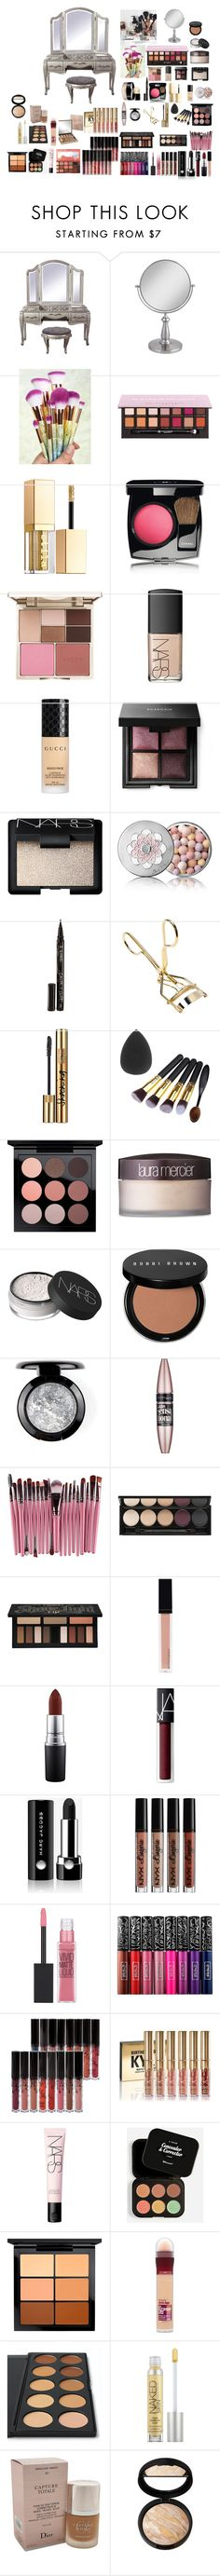 """Make Up"" by elma-alibasic ❤ liked on Polyvore featuring Universal Lighting and Decor, Chanel, Stila, NARS Cosmetics, Gucci, Guerlain, Smith & Cult, Yves Saint Laurent, MAC Cosmetics and Laura Mercier"